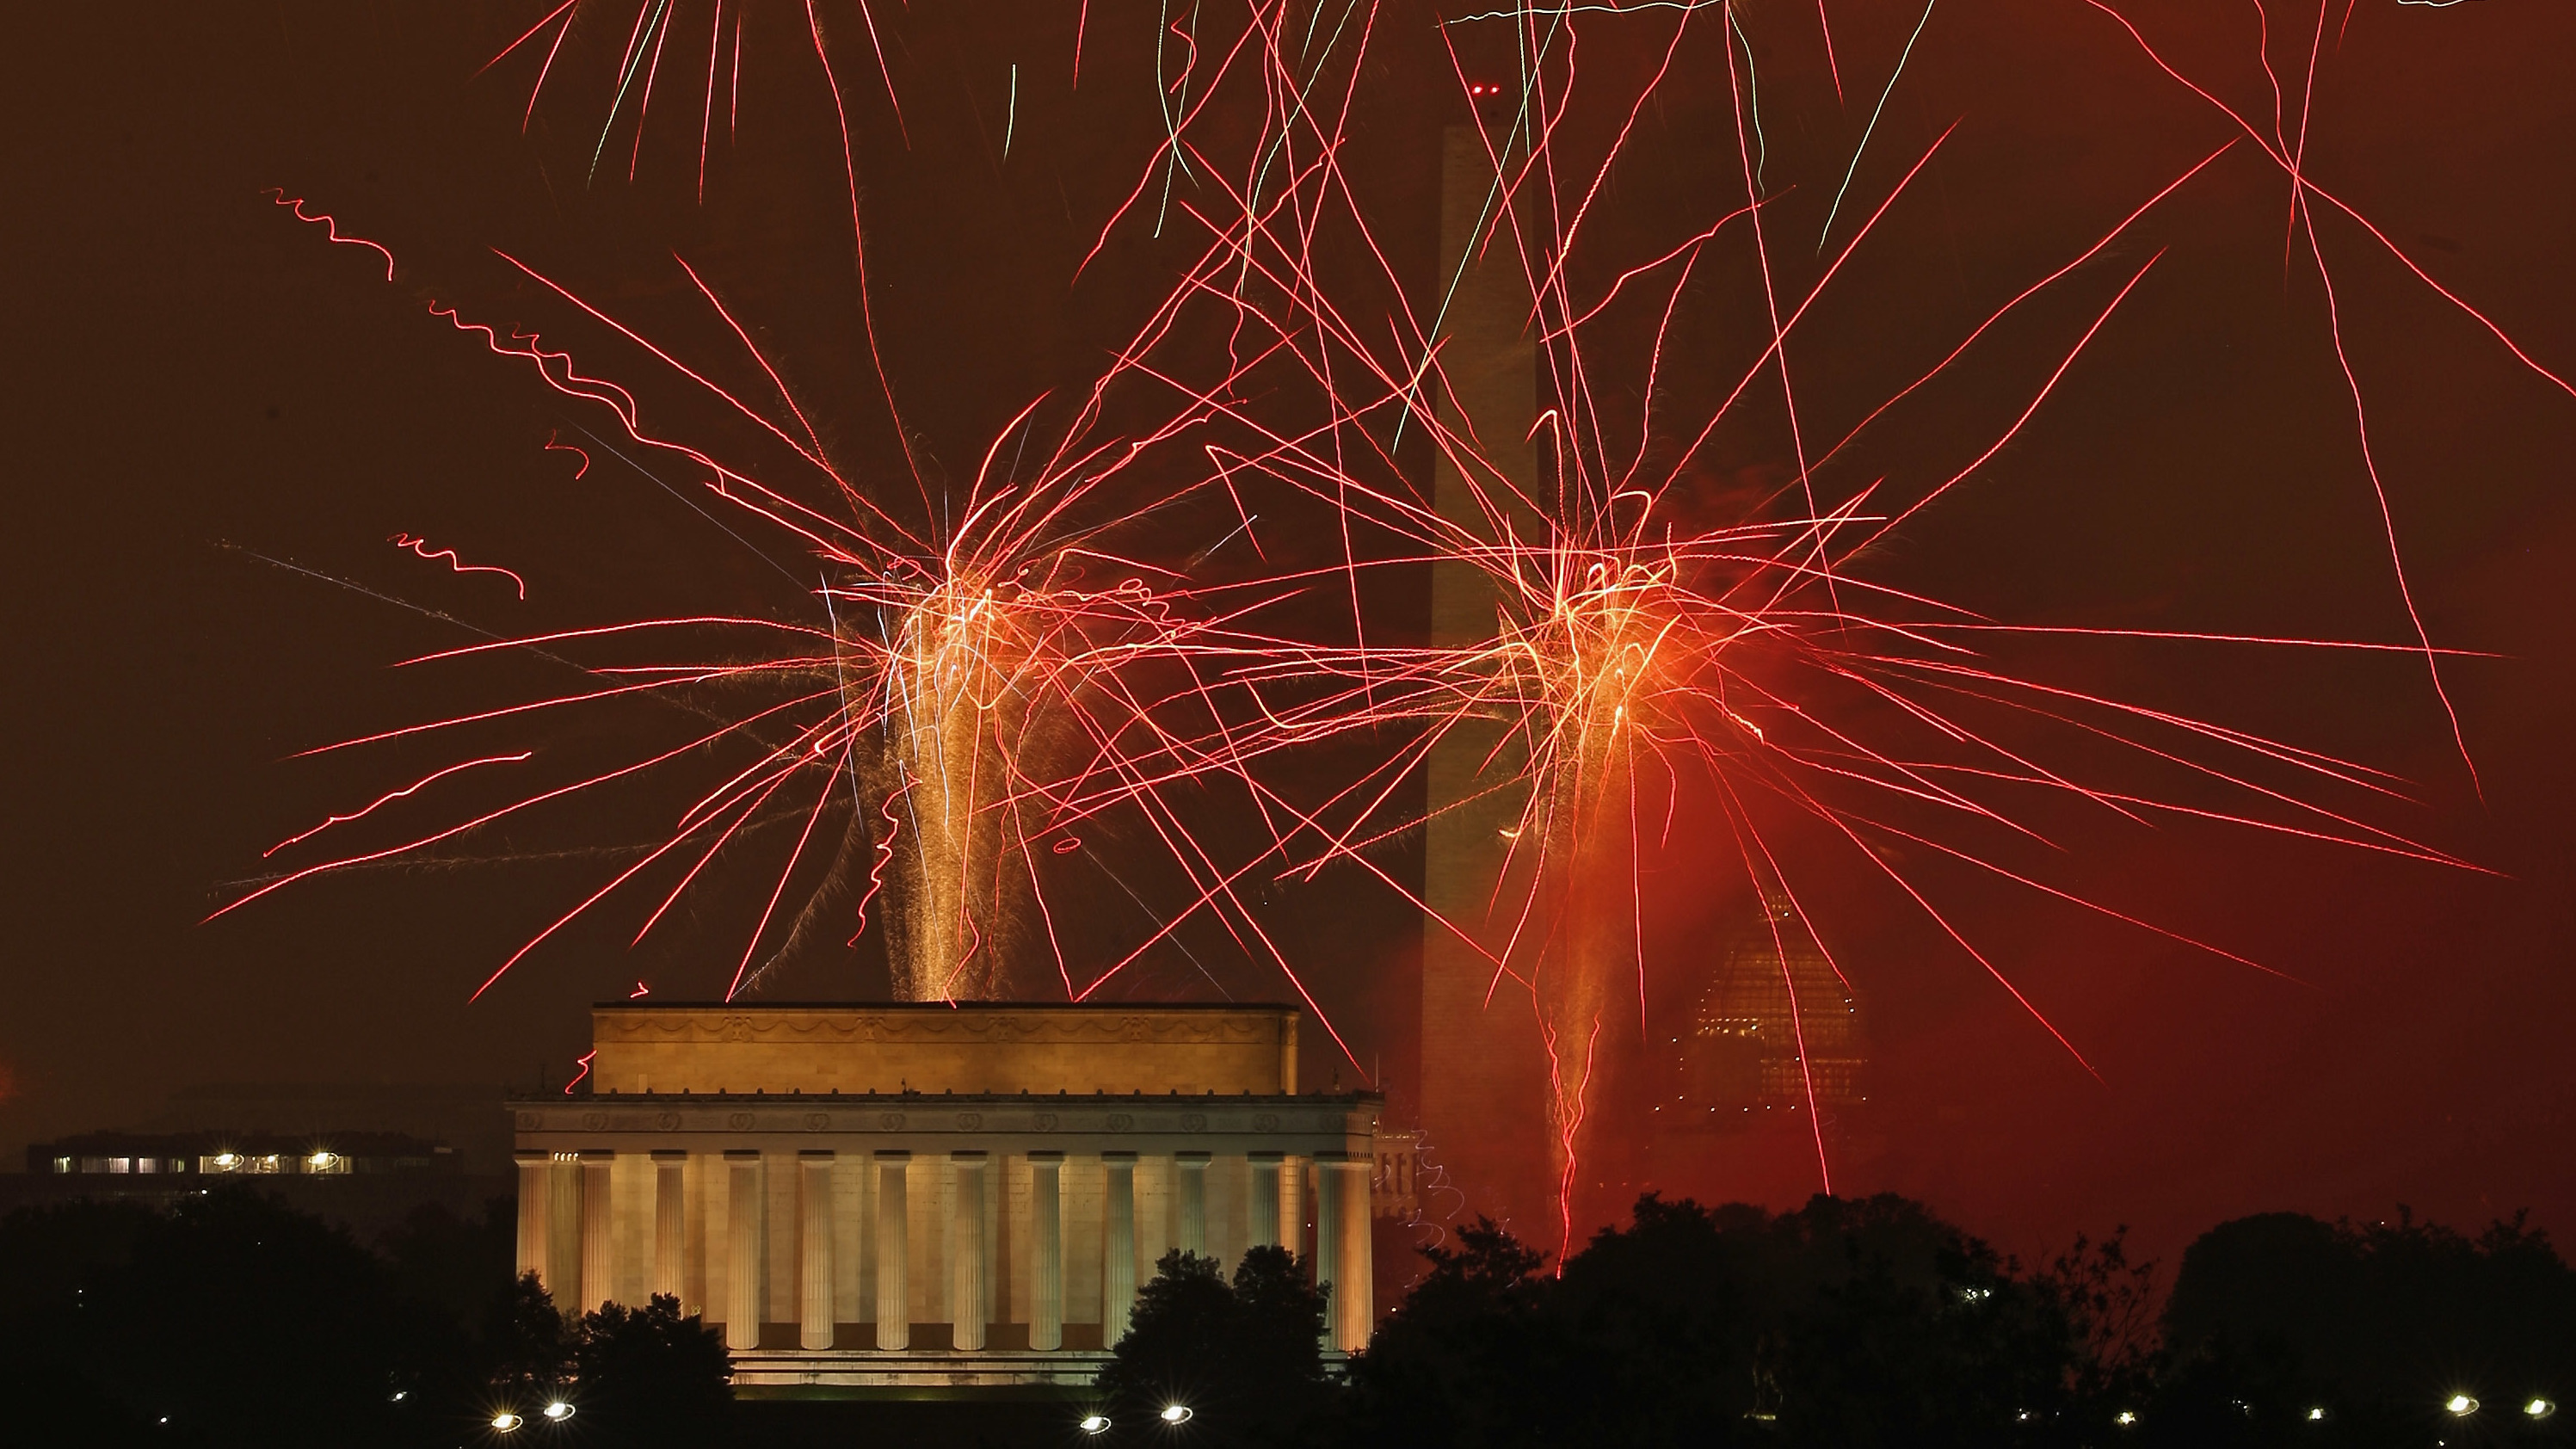 Fireworks explode over the National Mall during the 2015 July 4th fireworks show in Washington, D.C. For its 2016 Independence Day show, PBS used stock footage from previous shows, due to bad weather in the capital. (Photo by Chip Somodevilla/Getty Images)